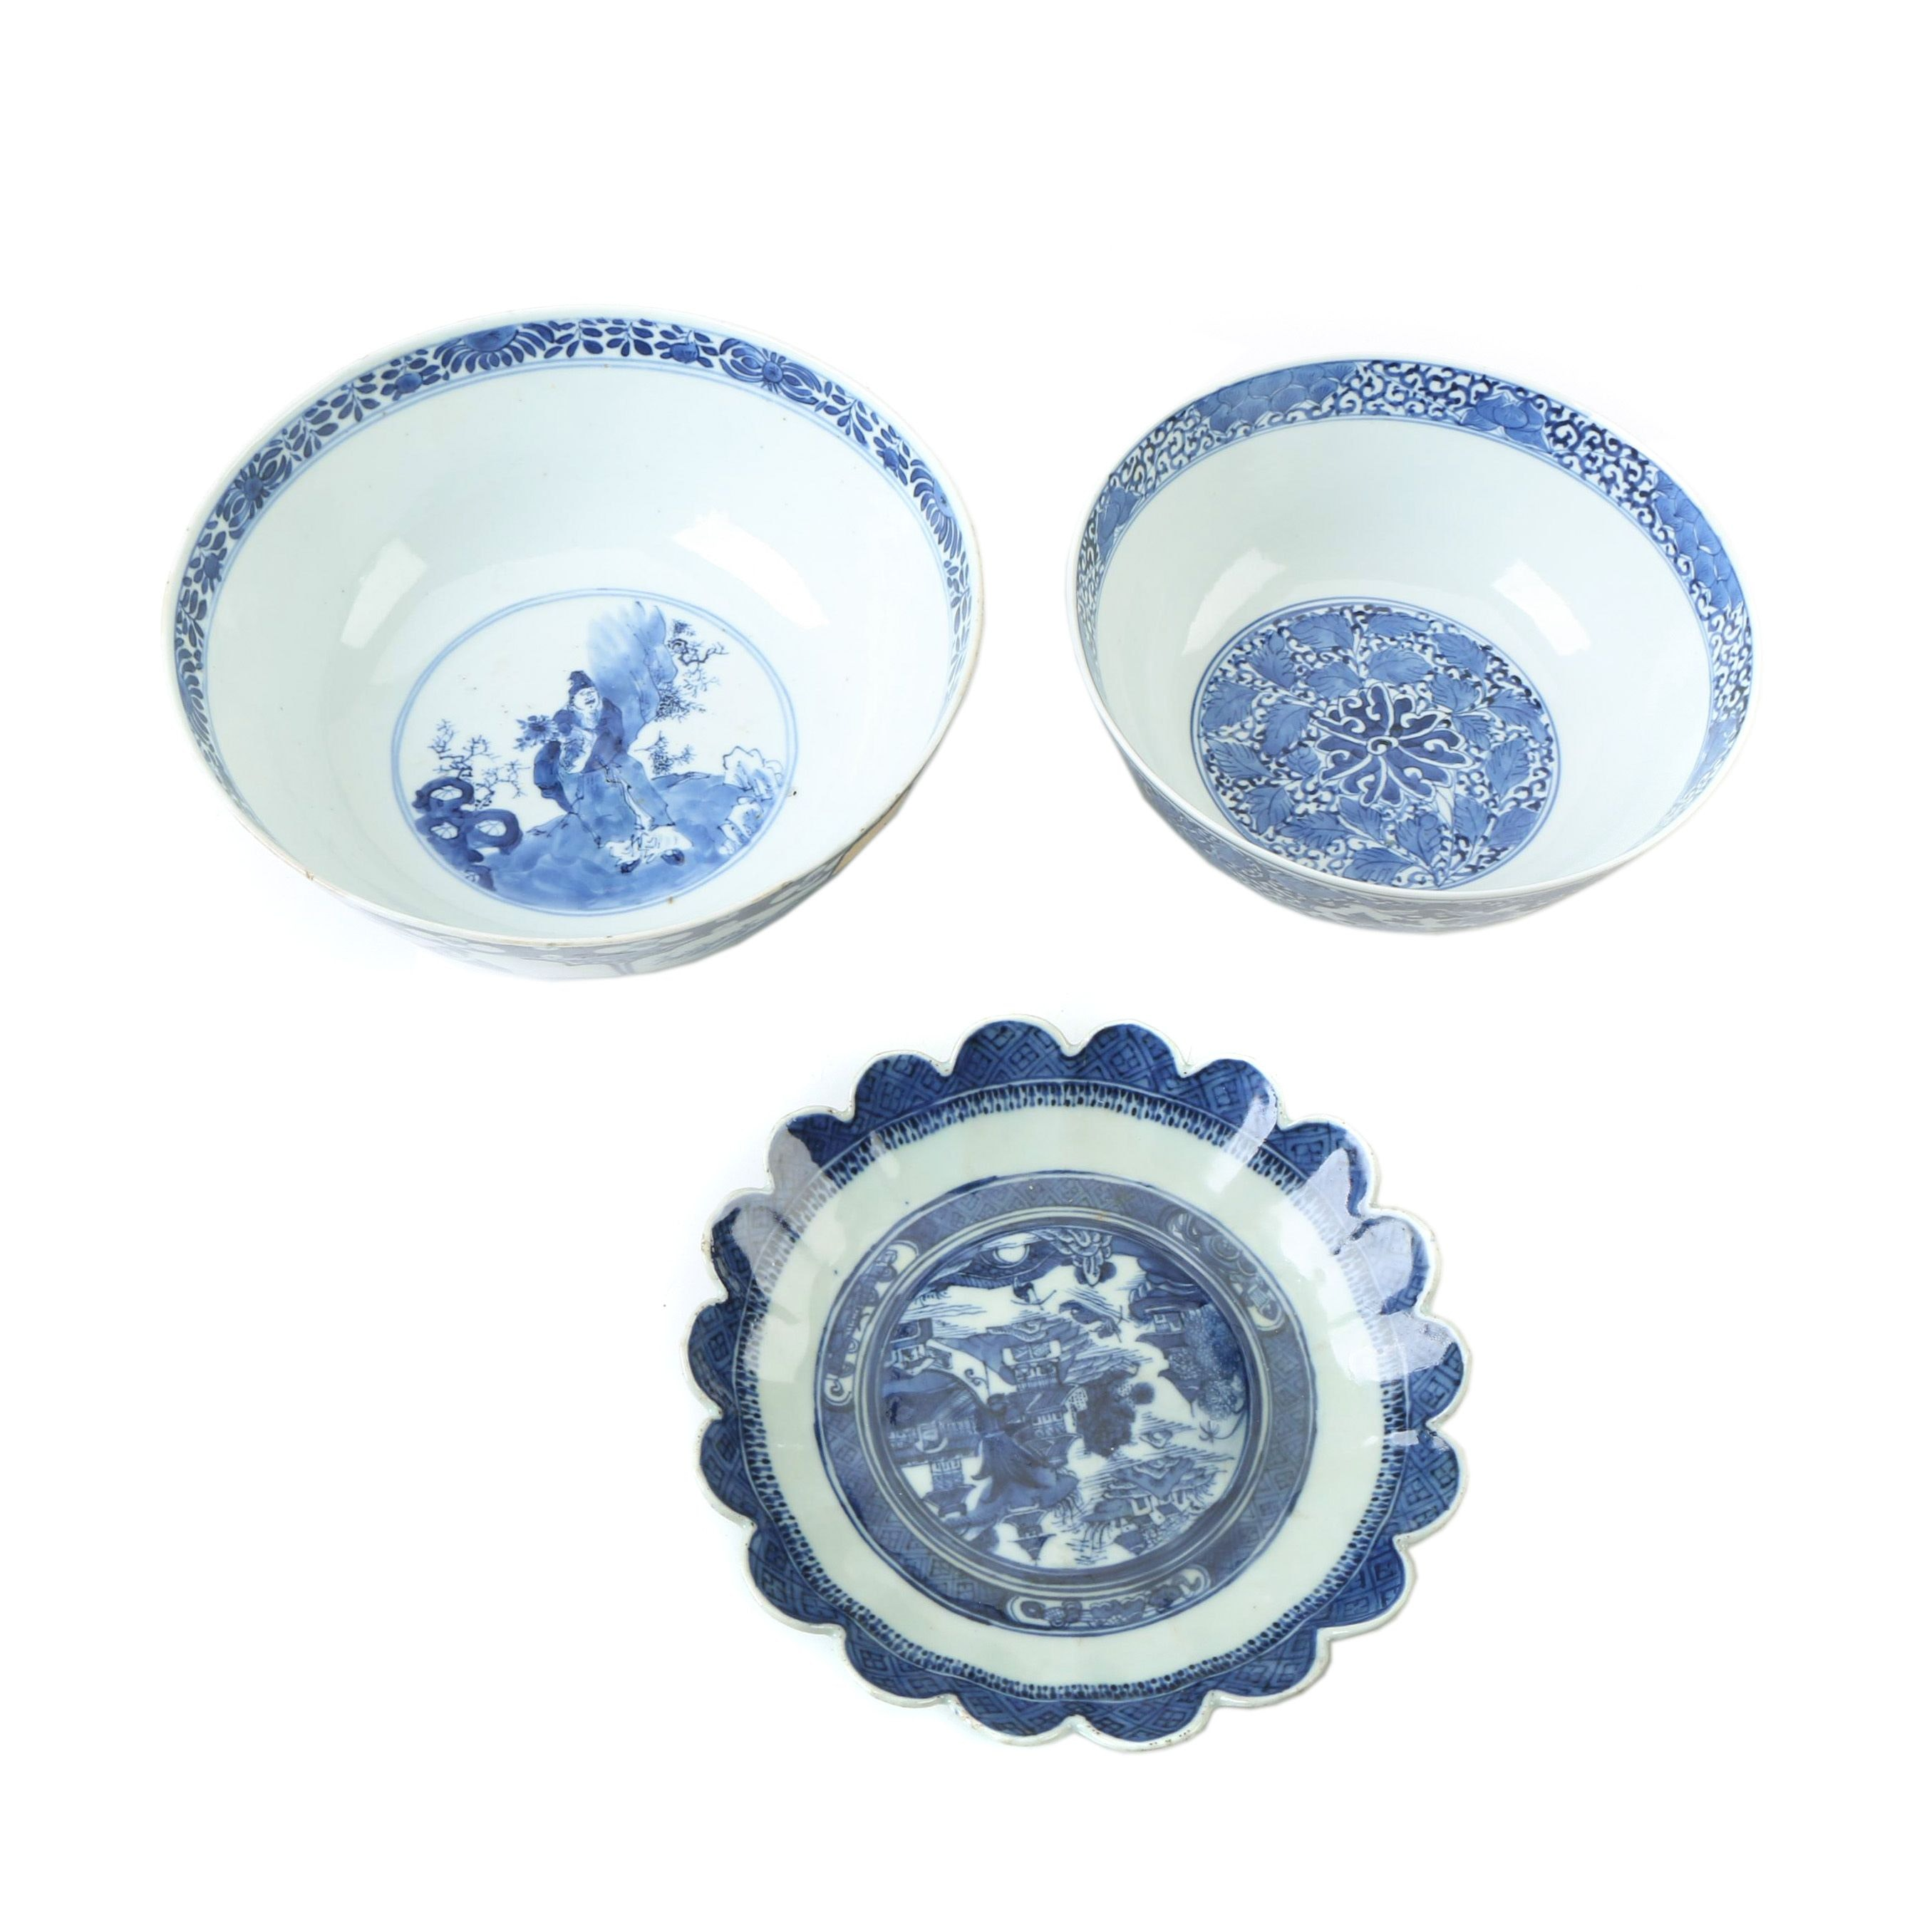 Two Export Blue and White Porcelain Bowls and a Cantonware Bowl